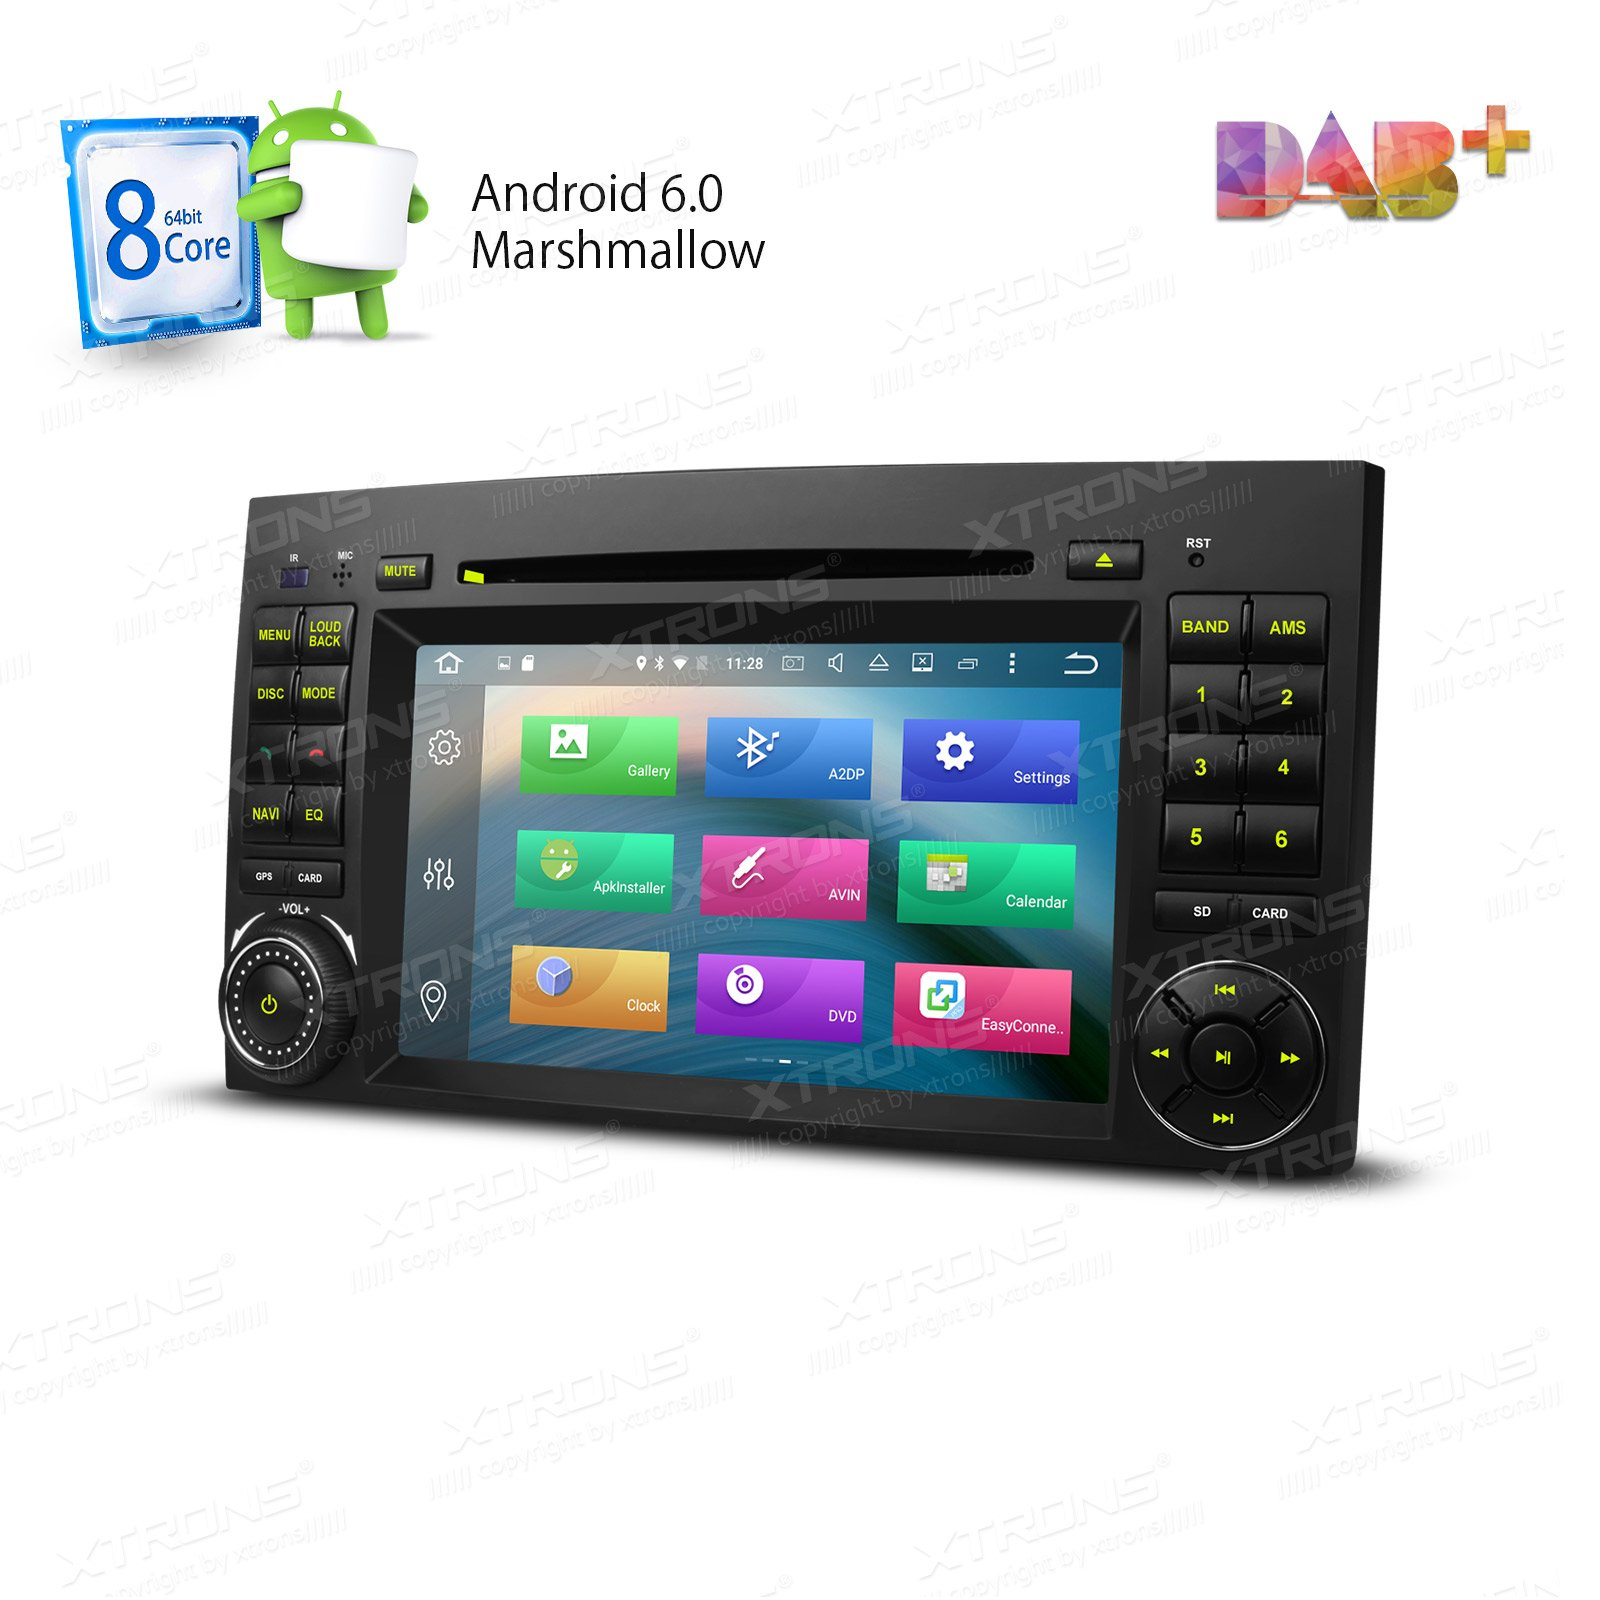 XTRONS Android 6.0 Octa-Core 64Bit 2G RAM 32GB ROM 7 Inch Capacitive Touch Screen Car Stereo Radio DVD Player GPS CANbus Screen Mirroring Function OBD2 Tire Pressure Monitoring for Mercedes-Benz